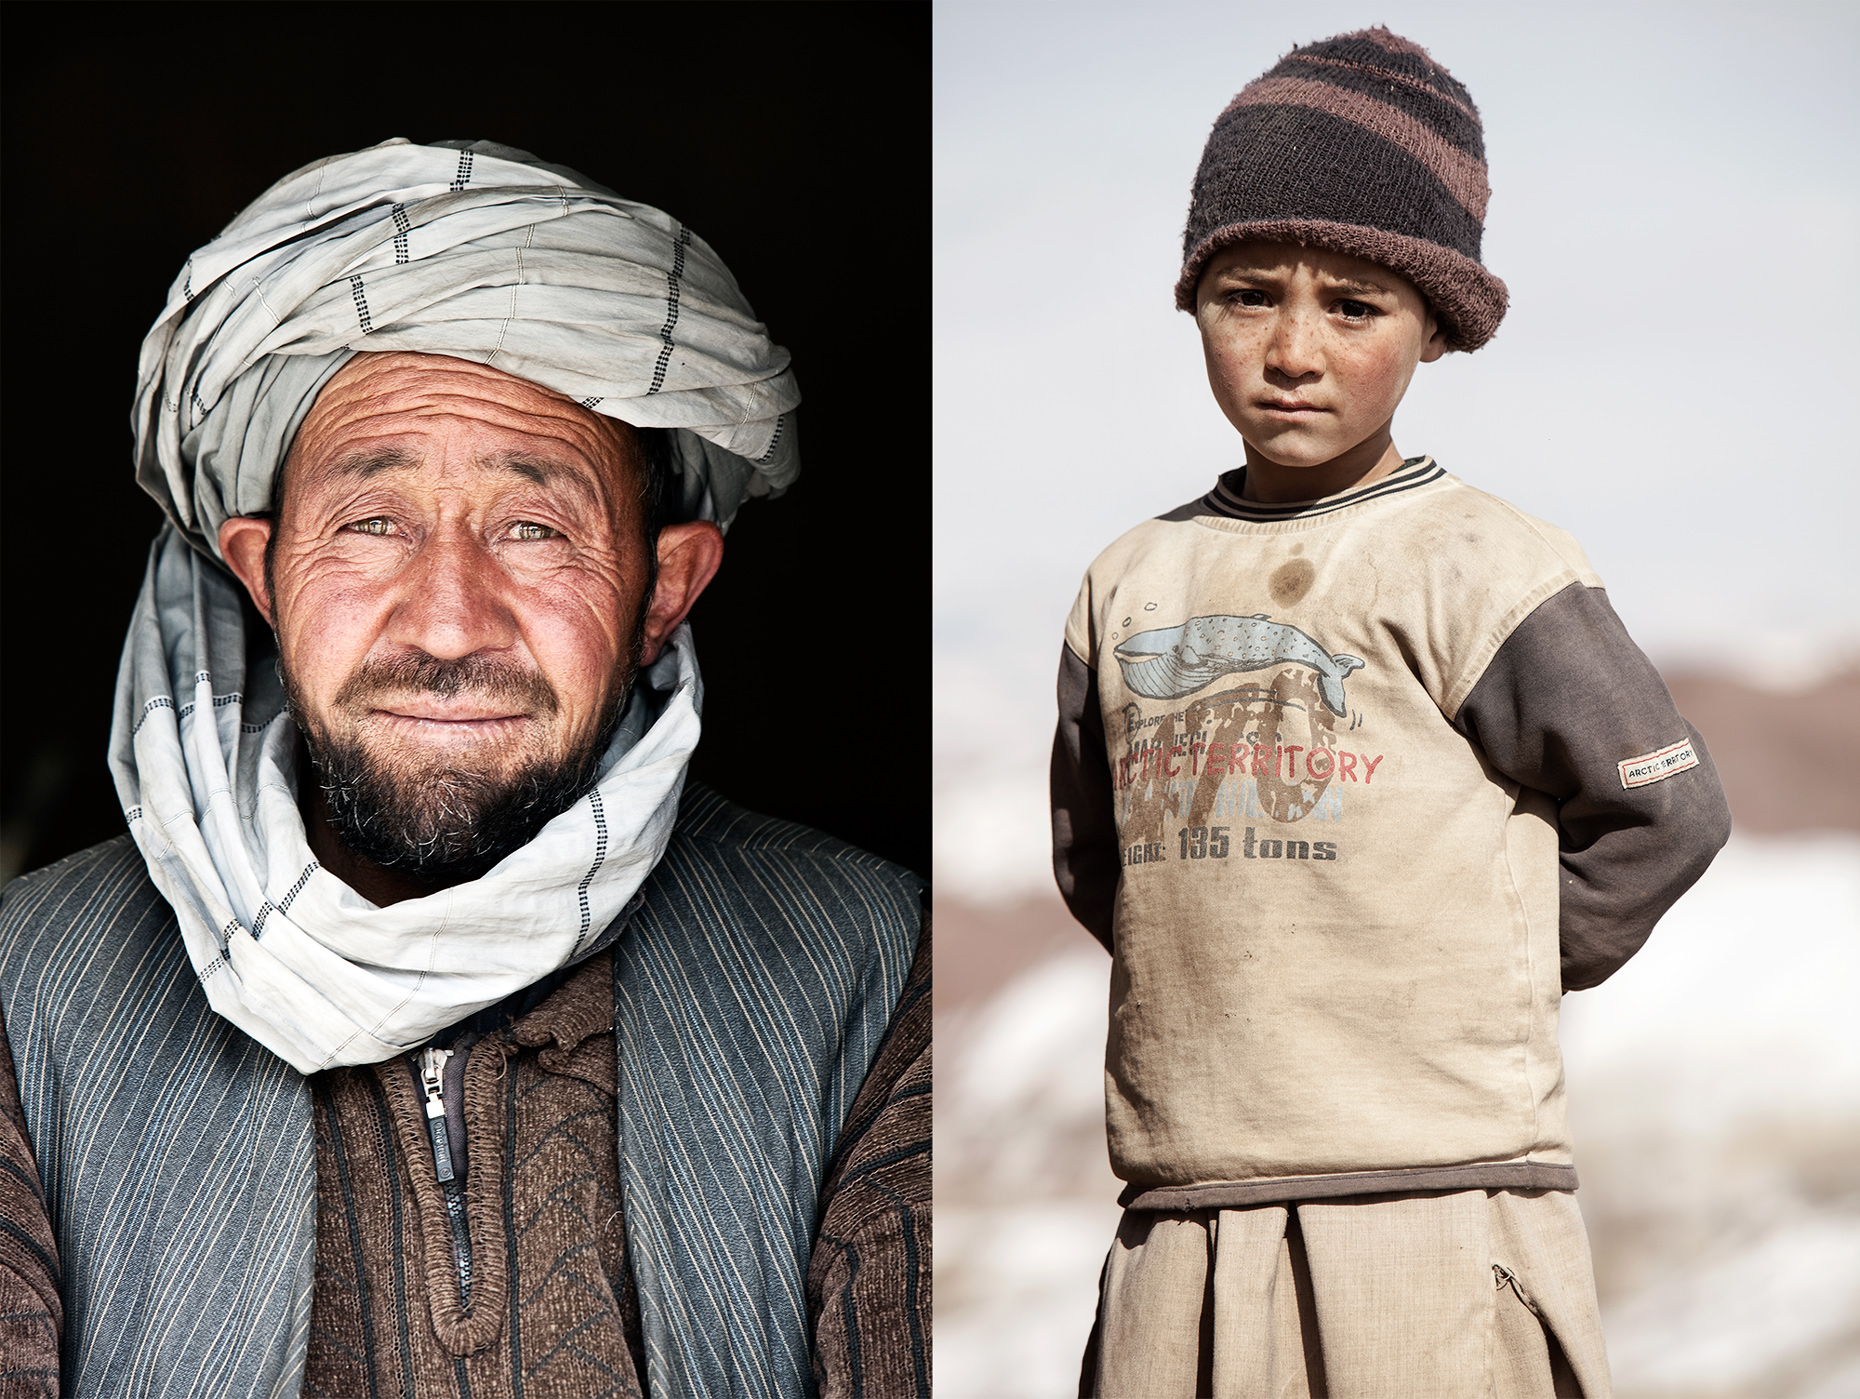 Afghanistan man and boy